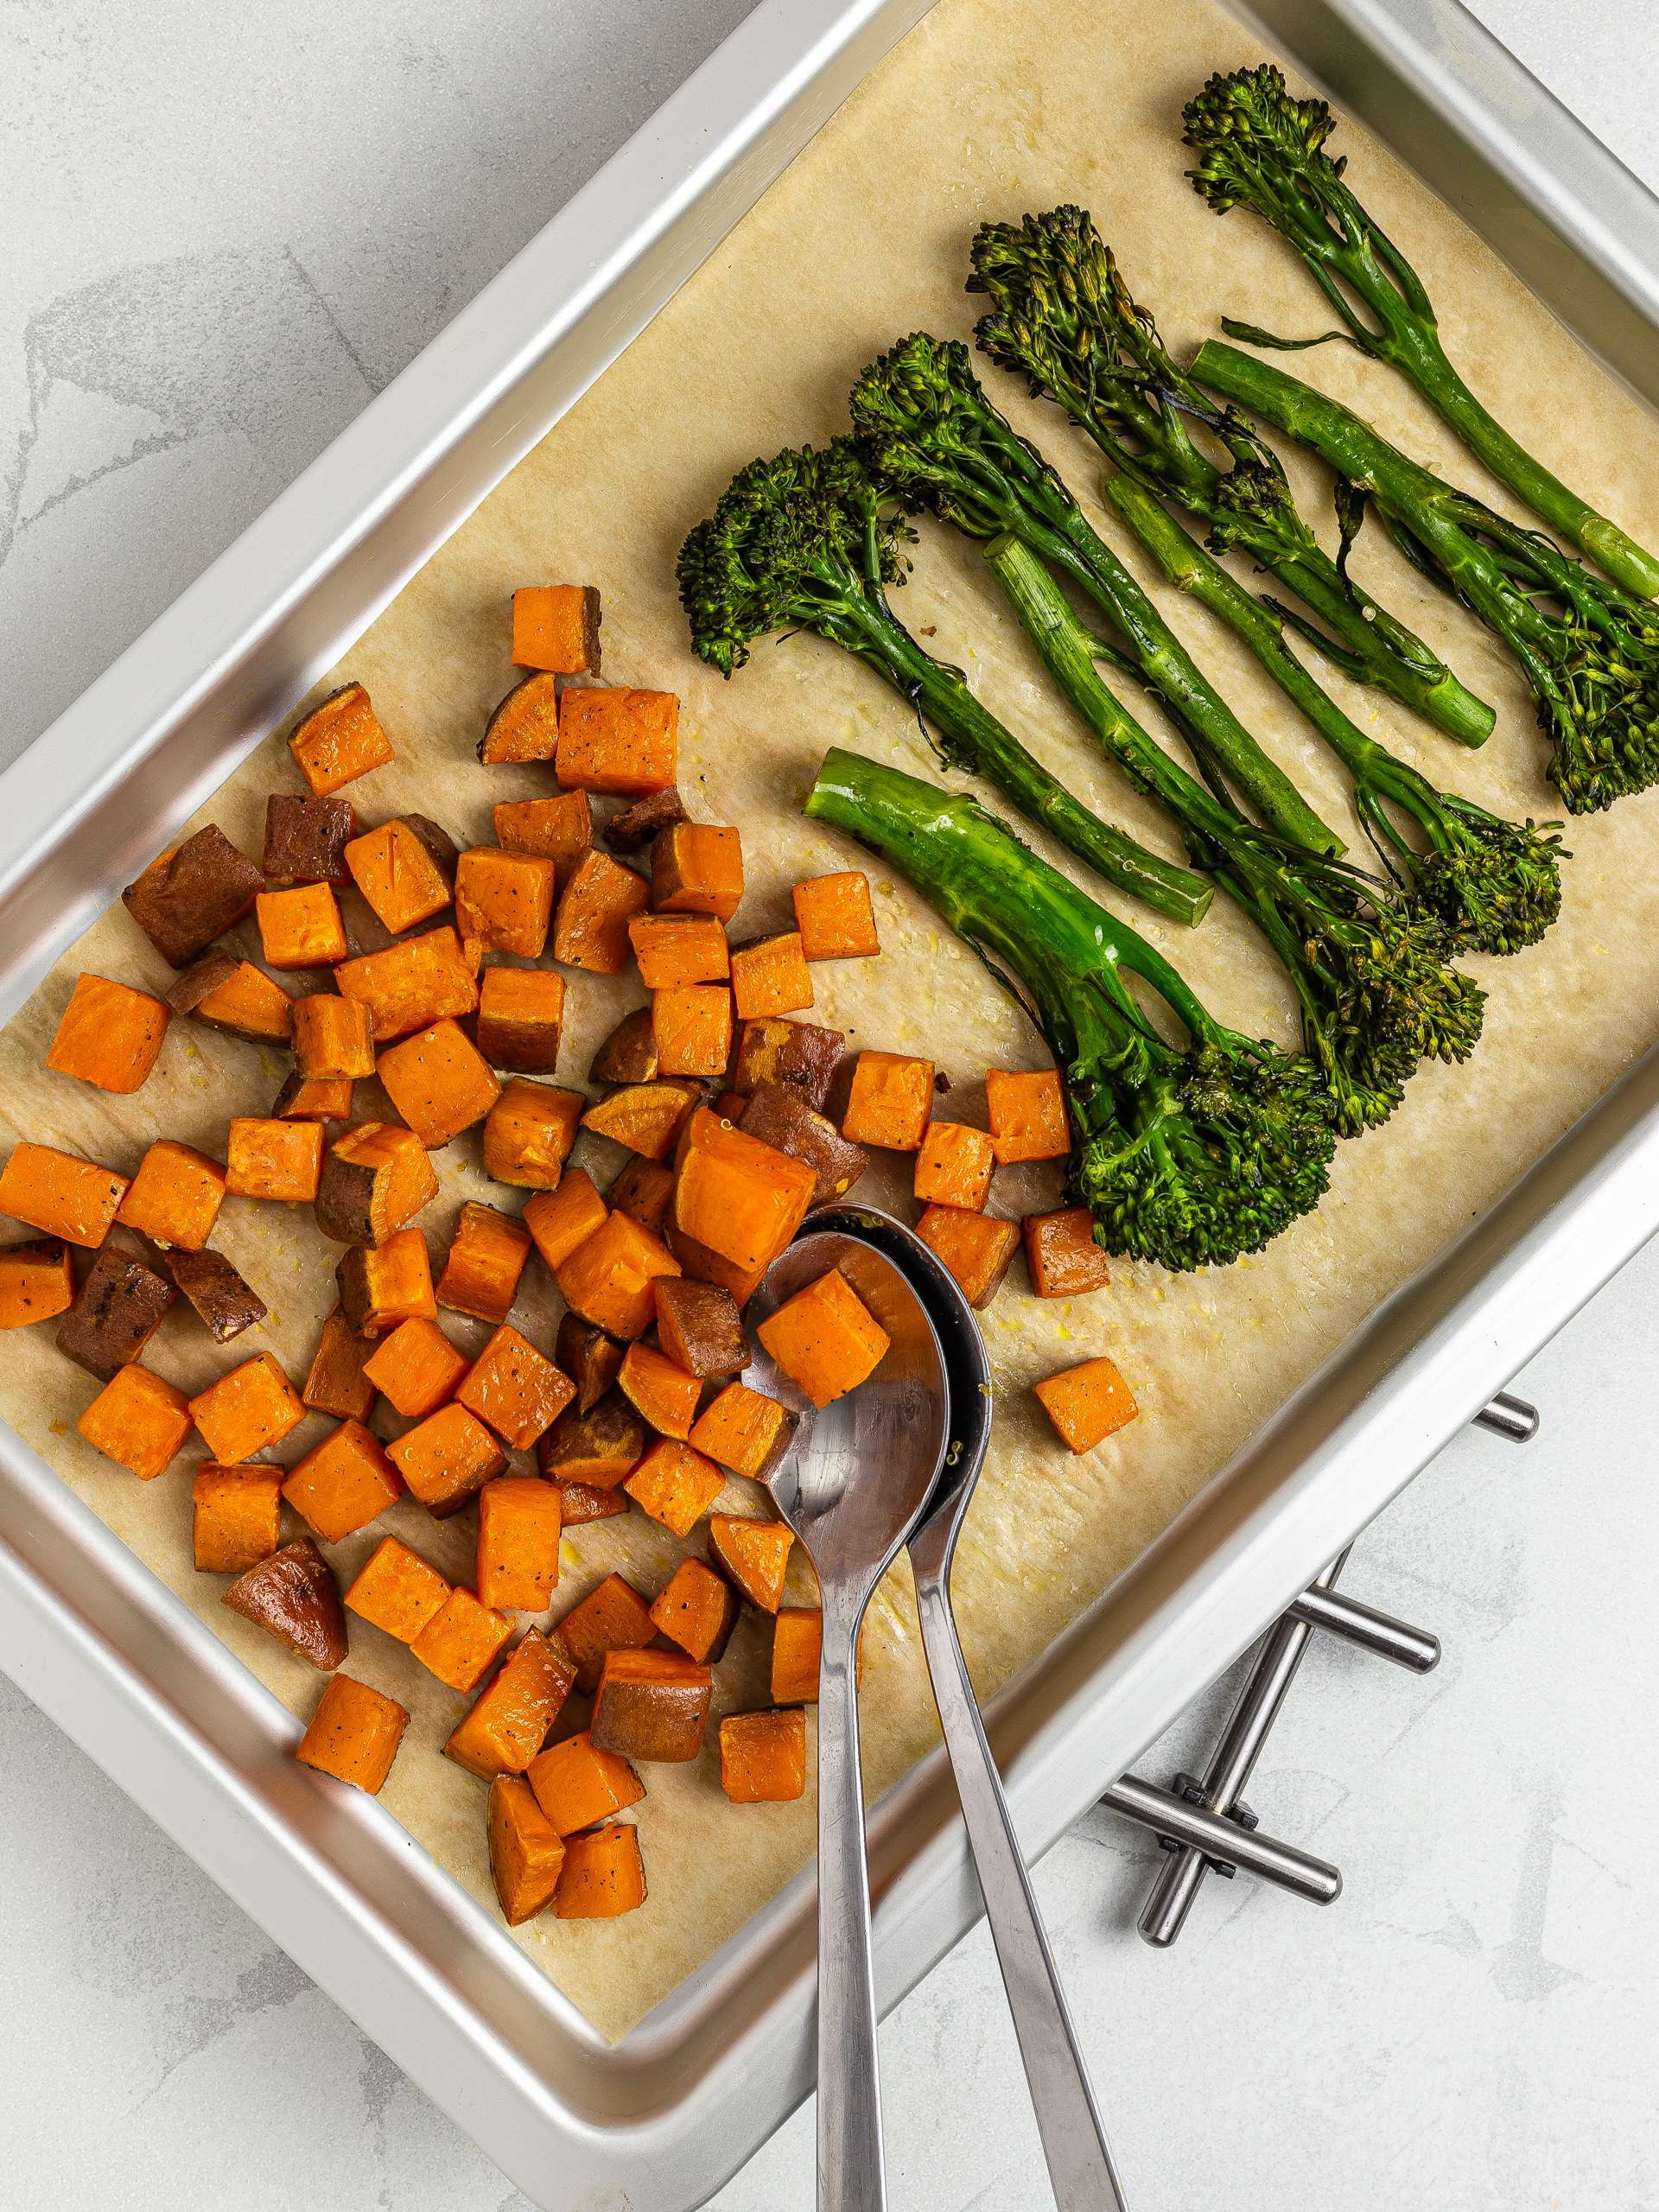 Roasted sweet potatoes and tenderstem broccoli